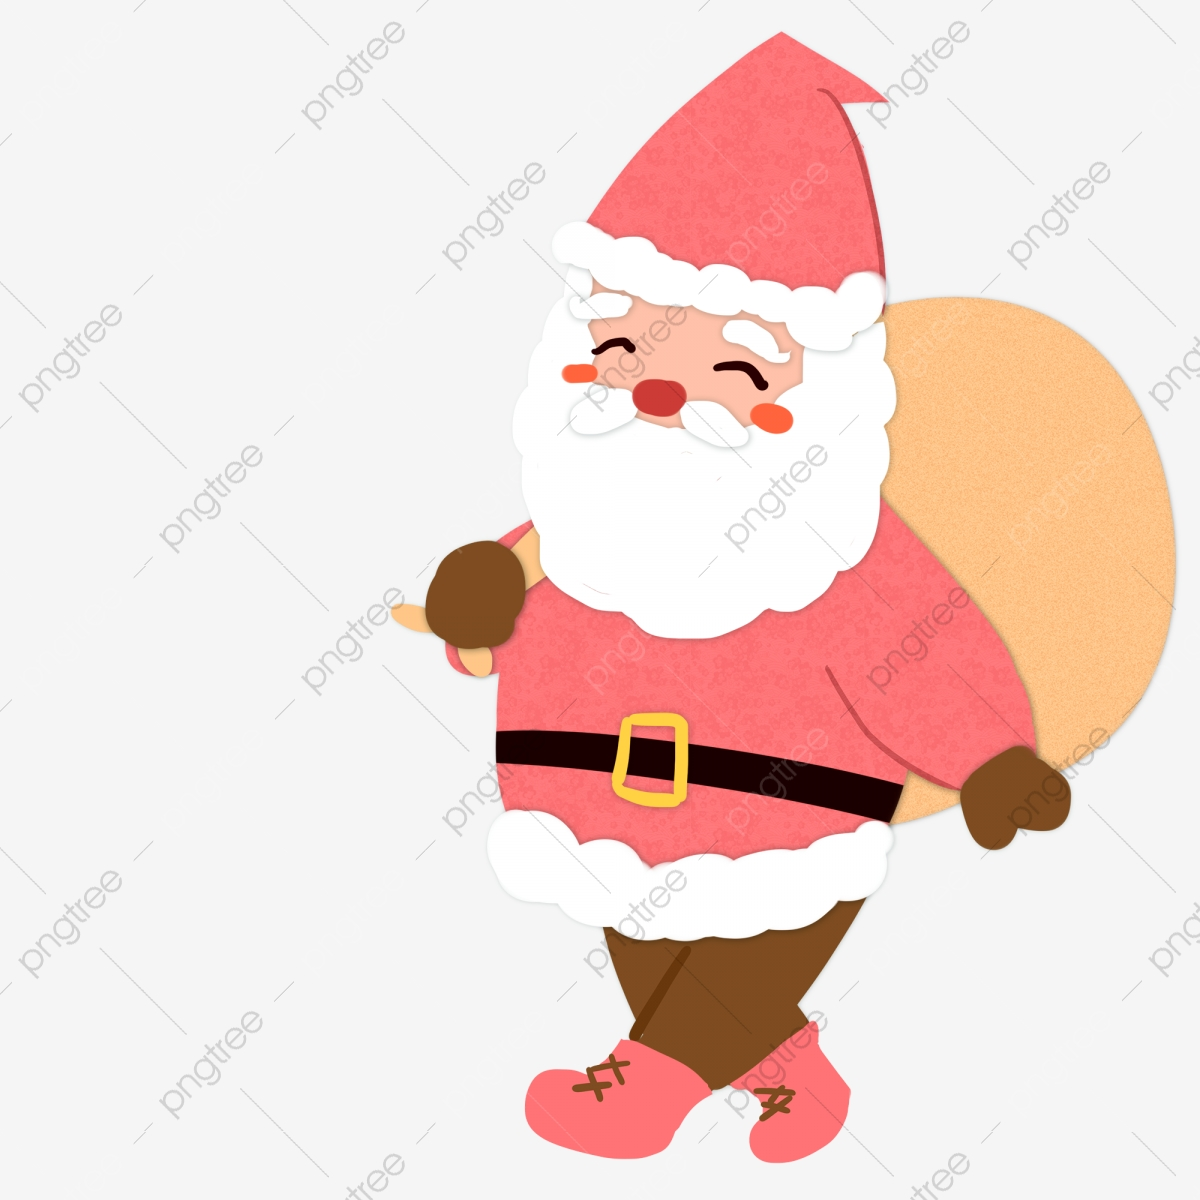 Cartoon Cute Santa Claus Carrying Sack Cartoon Paper Wind Small Fresh Png Transparent Clipart Image And Psd File For Free Download